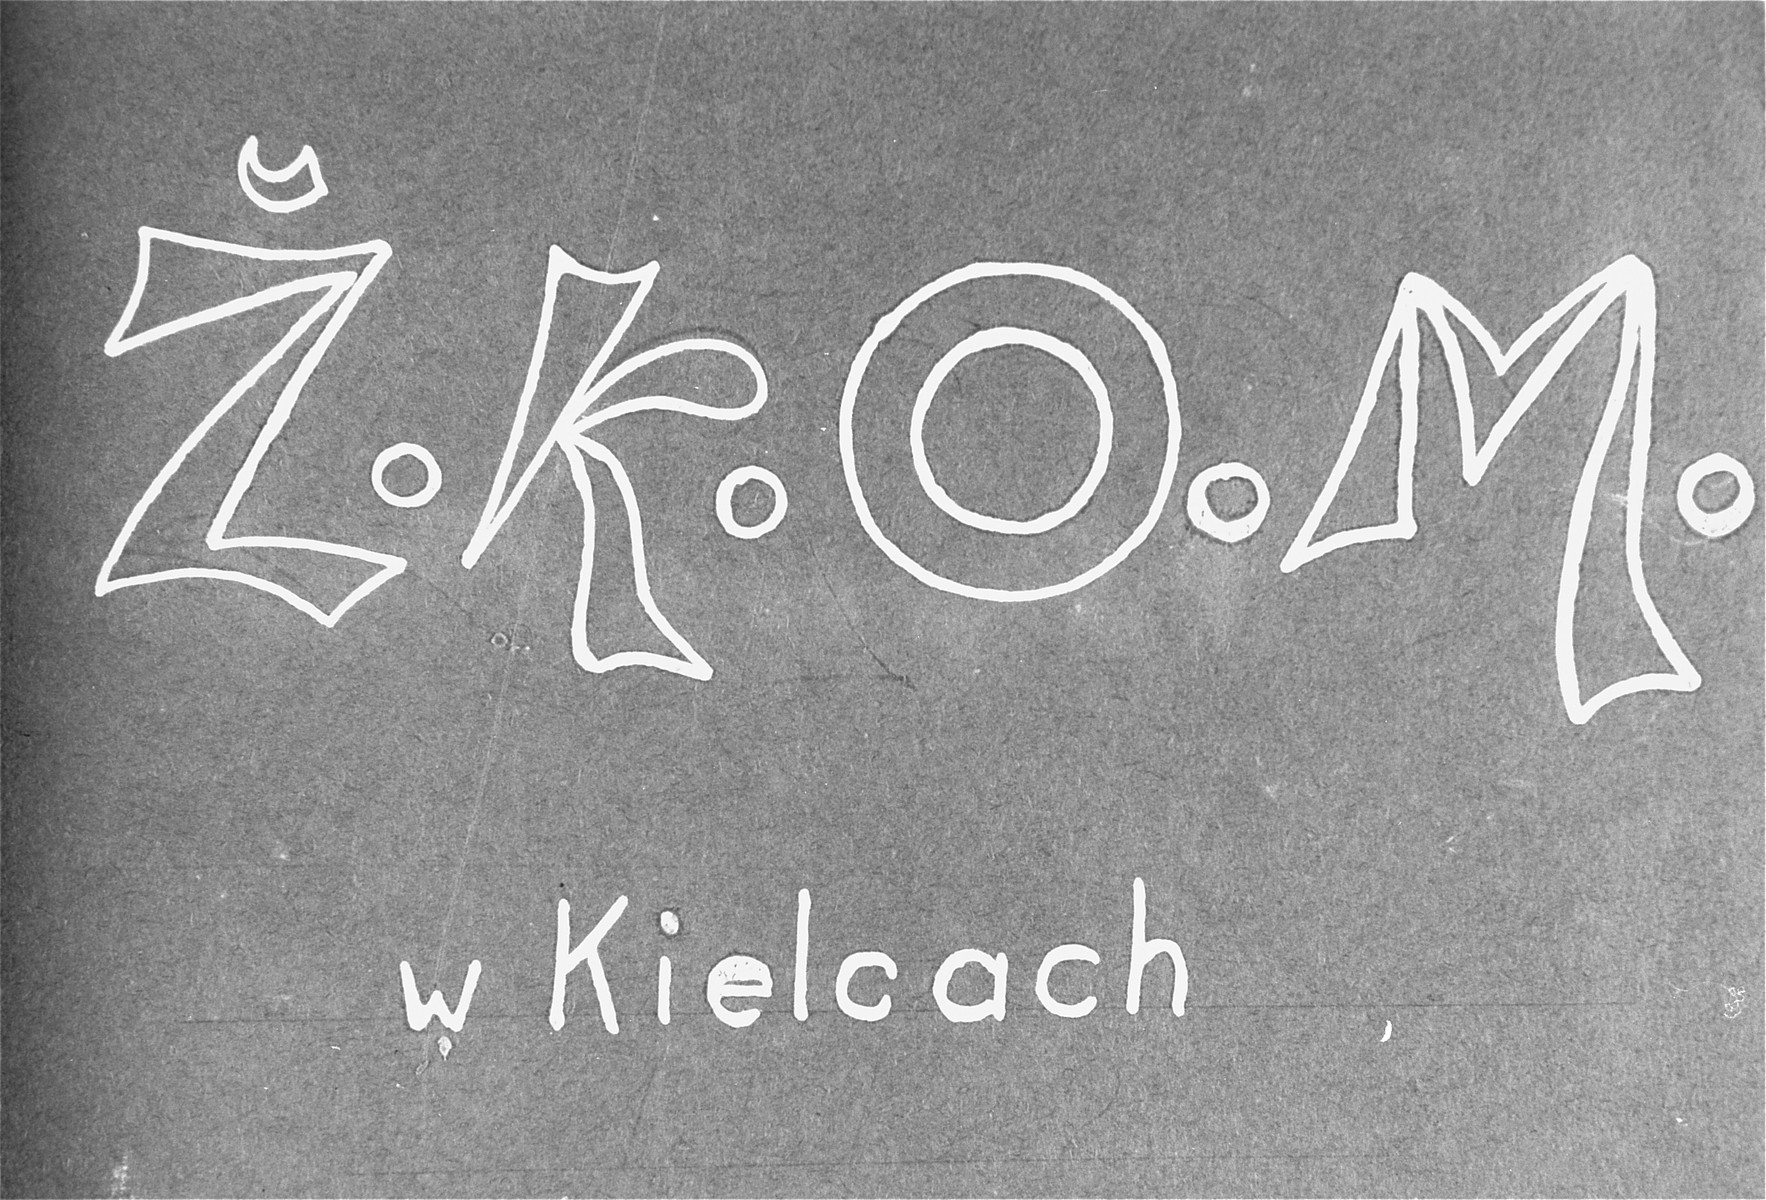 First page of an album prepared by the employees of the Jewish Council in the Kielce ghetto for the chairman of the council. The letters Z.K.O.M. stand for Jewish Welfare City Committee.